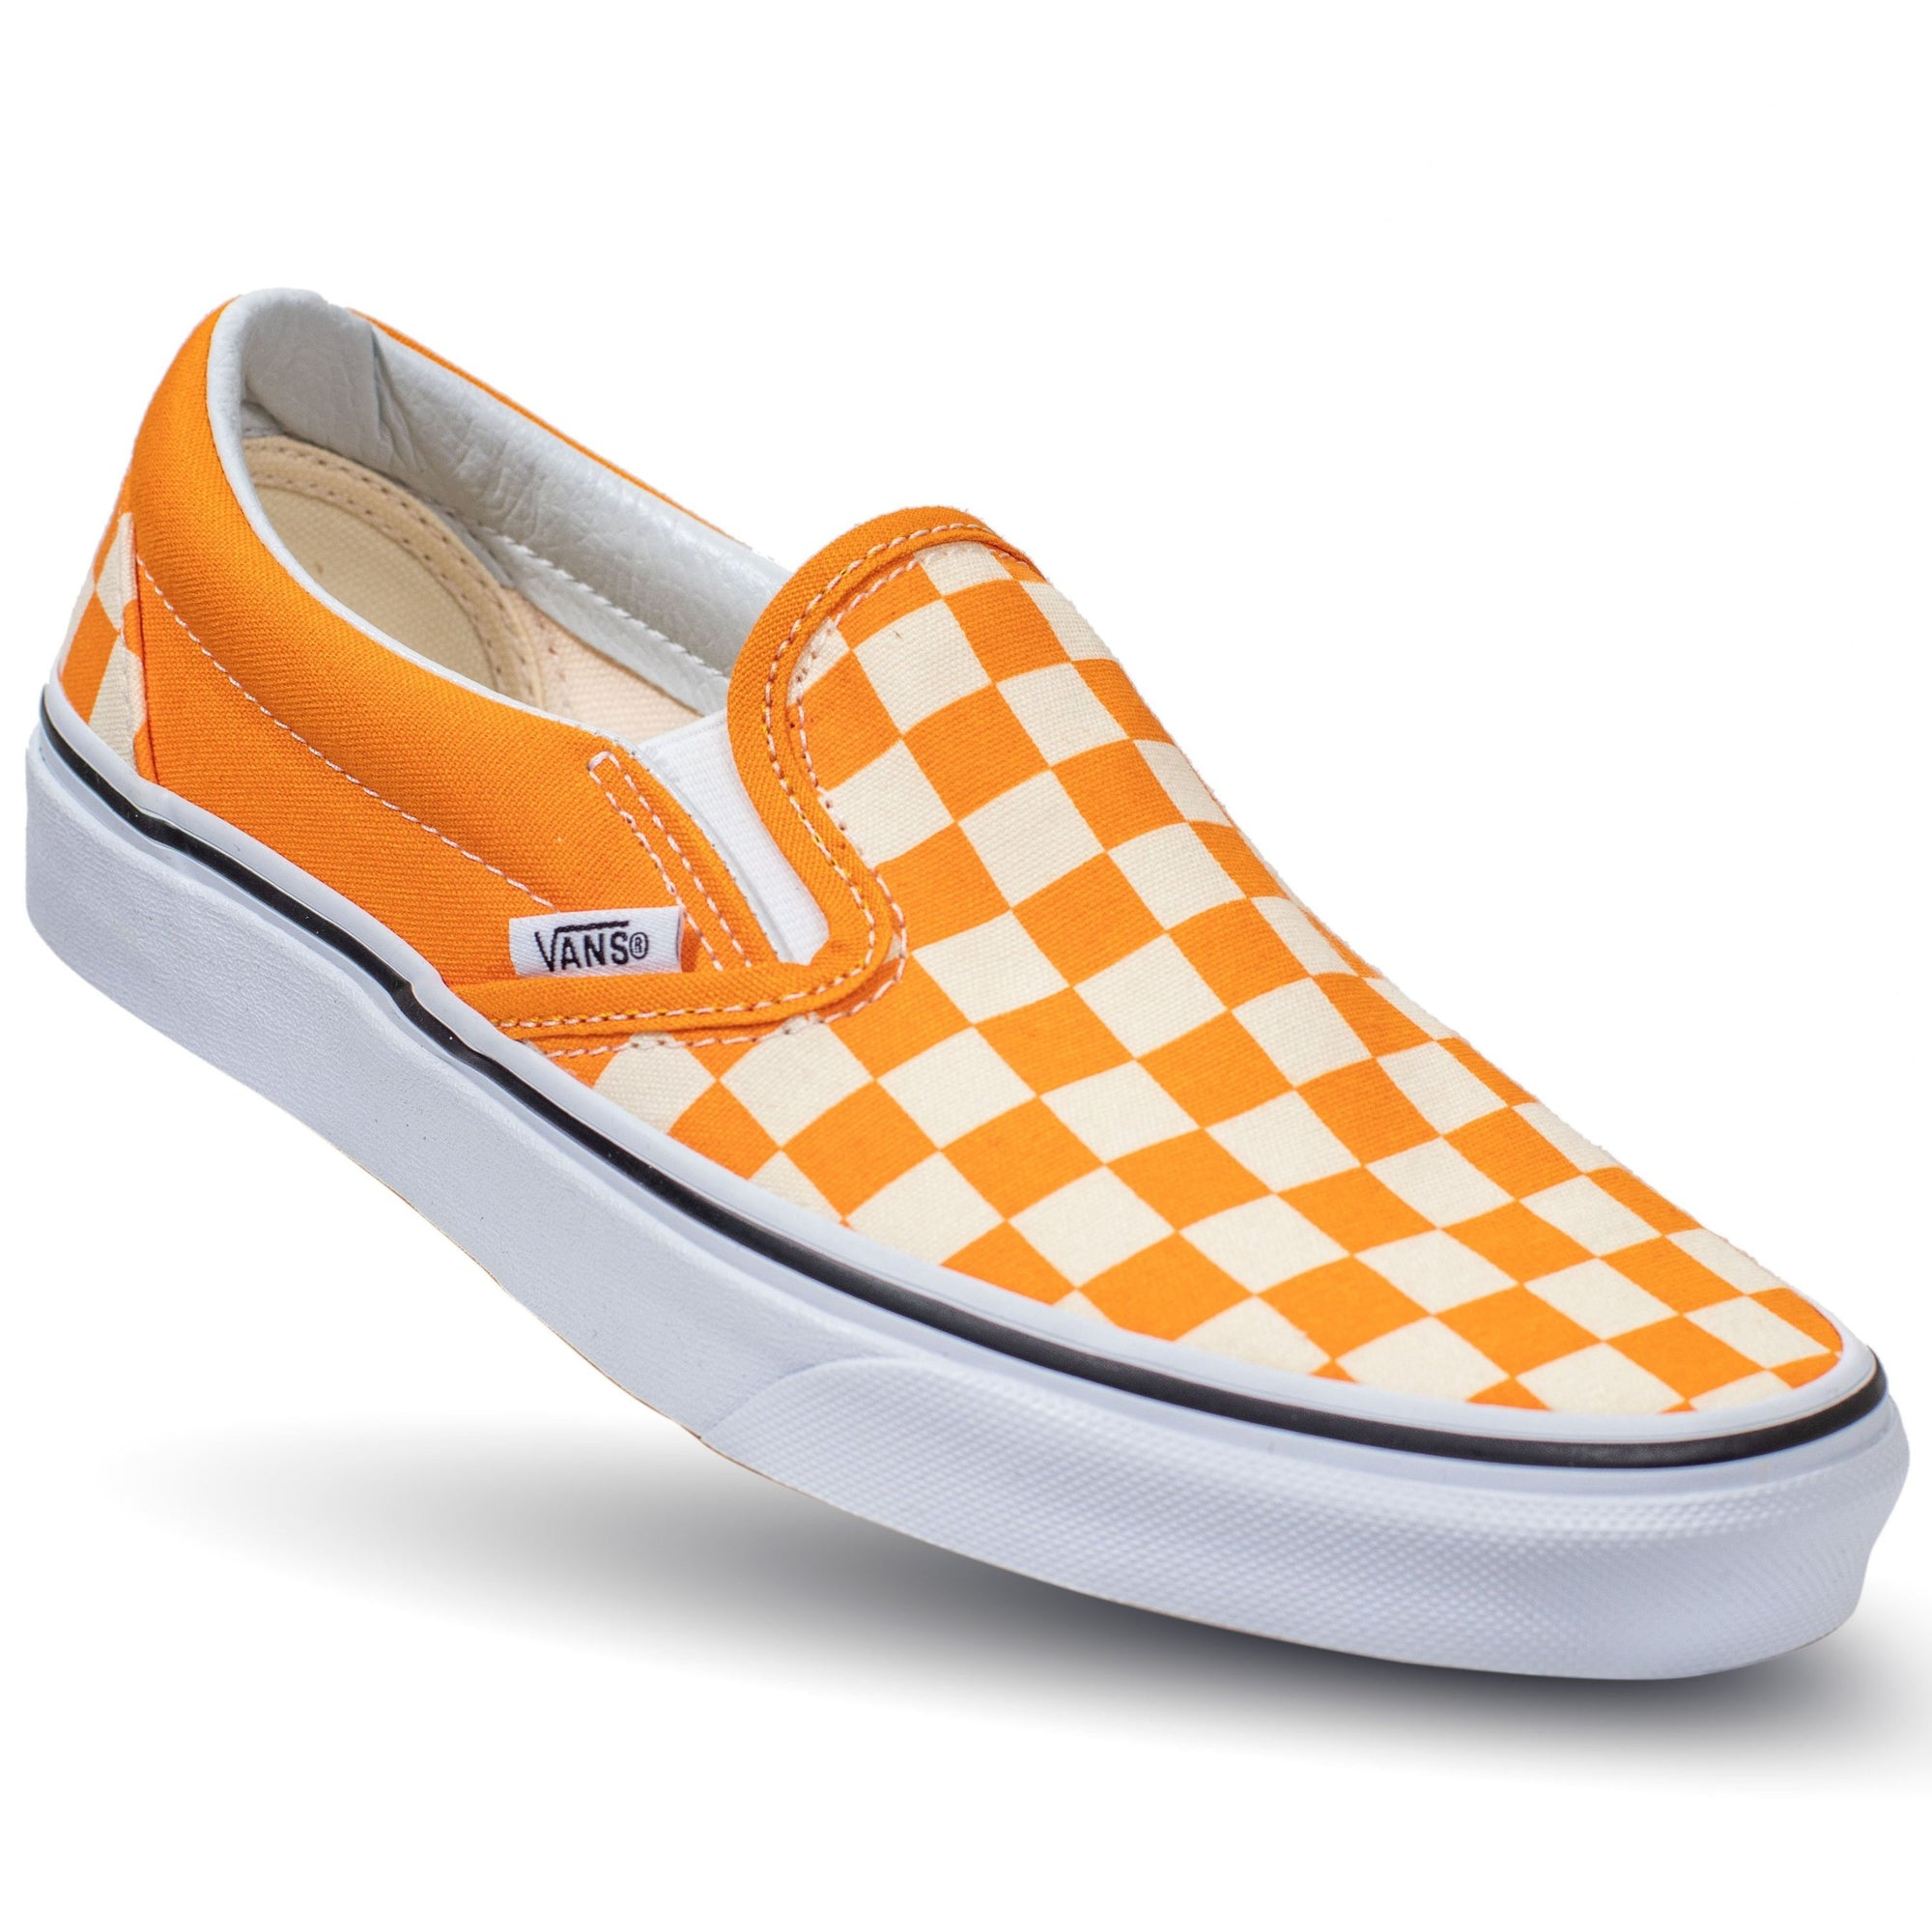 dfc6a2ee3153 Vans Slip-on (Checkerboard) - Dark Cheddar True White - Chane